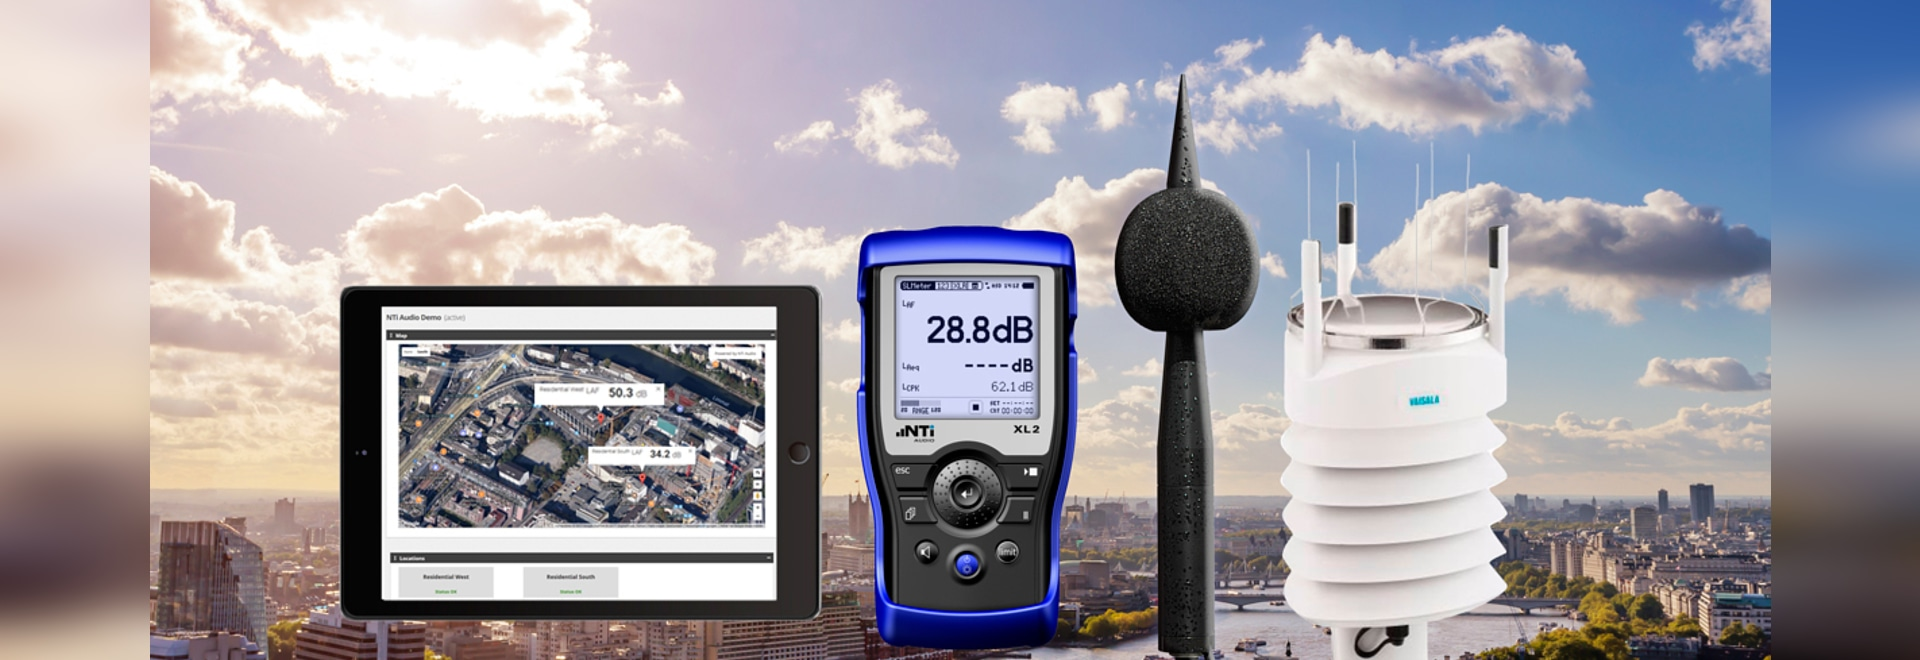 https://www.nti-audio.com/en/news/new-functions-for-the-xl2-ta-outdoor-noise-measuring-station